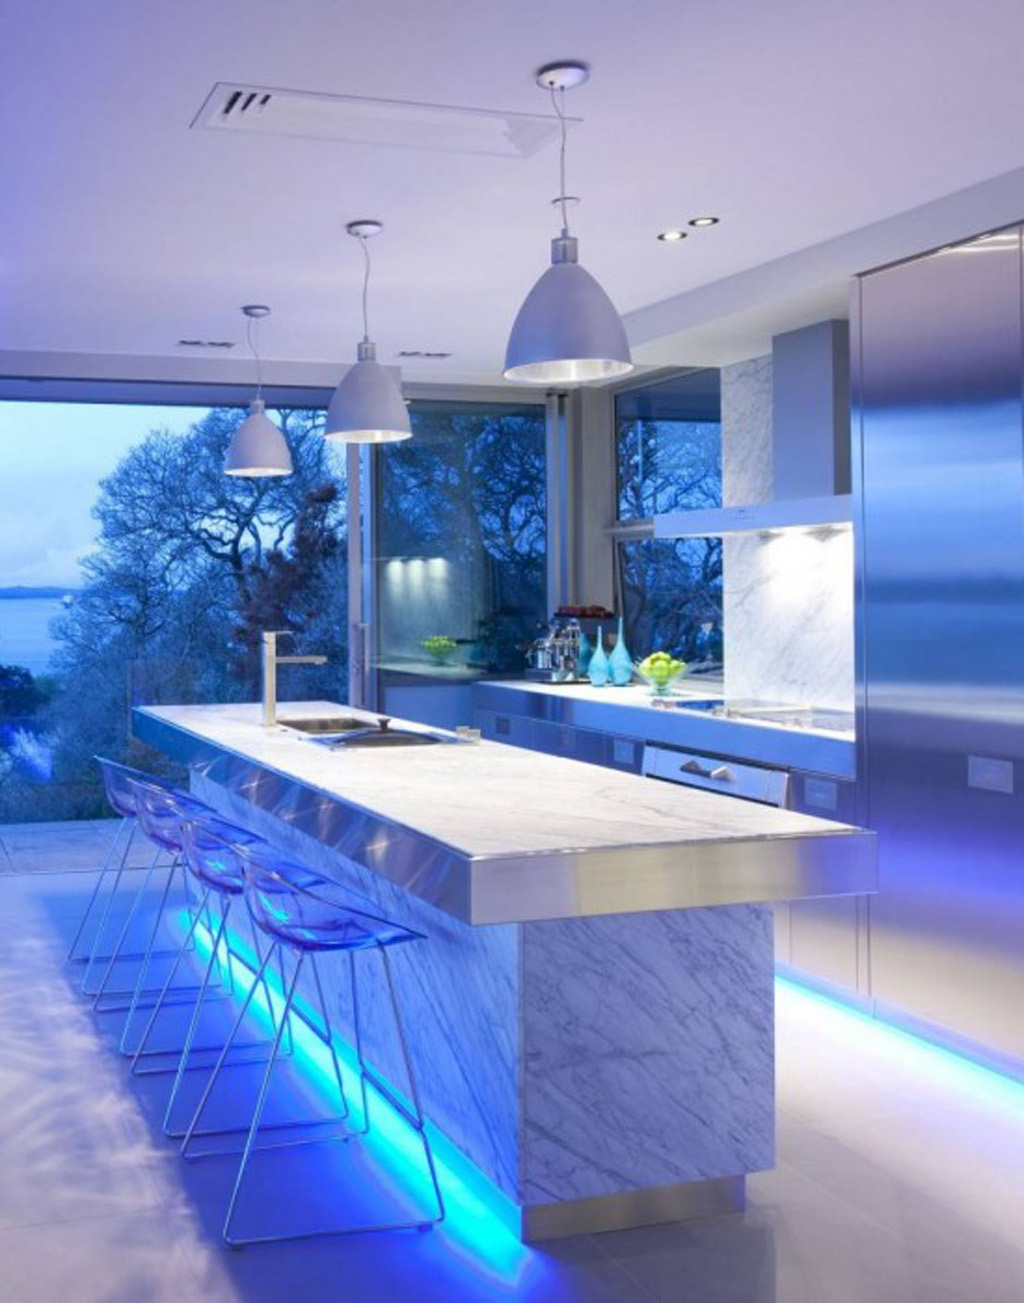 Ultra modern kitchen set and kitchen island with under cabinet lighting fixtures three pendant lamps in modern style and modern barstools